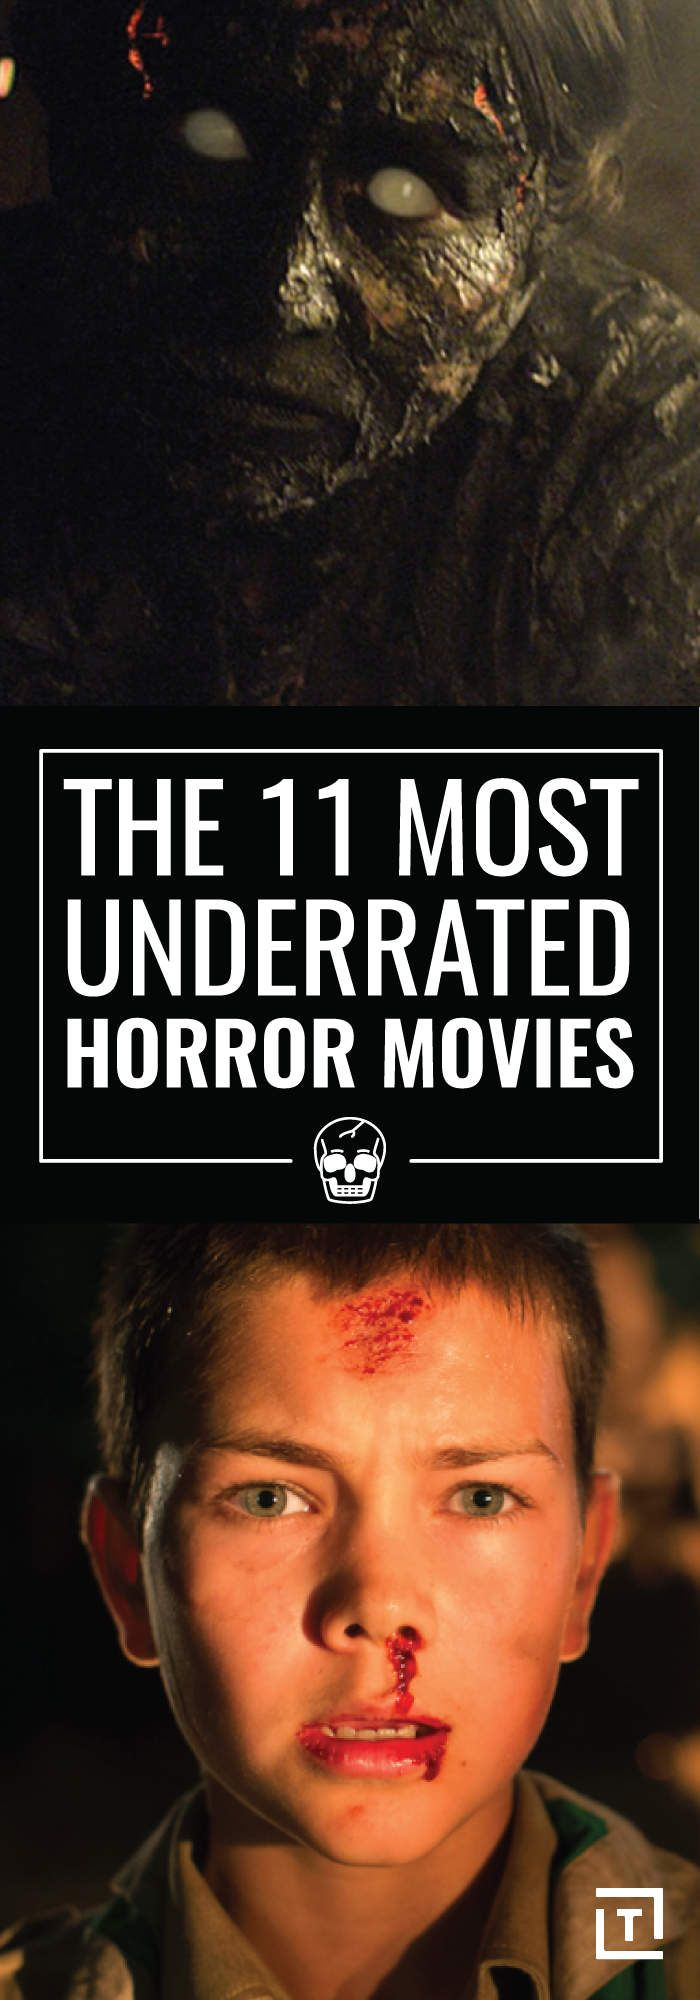 Fish tank kings netflix - The Most Underrated Horror Movies You Can Watch Right Now